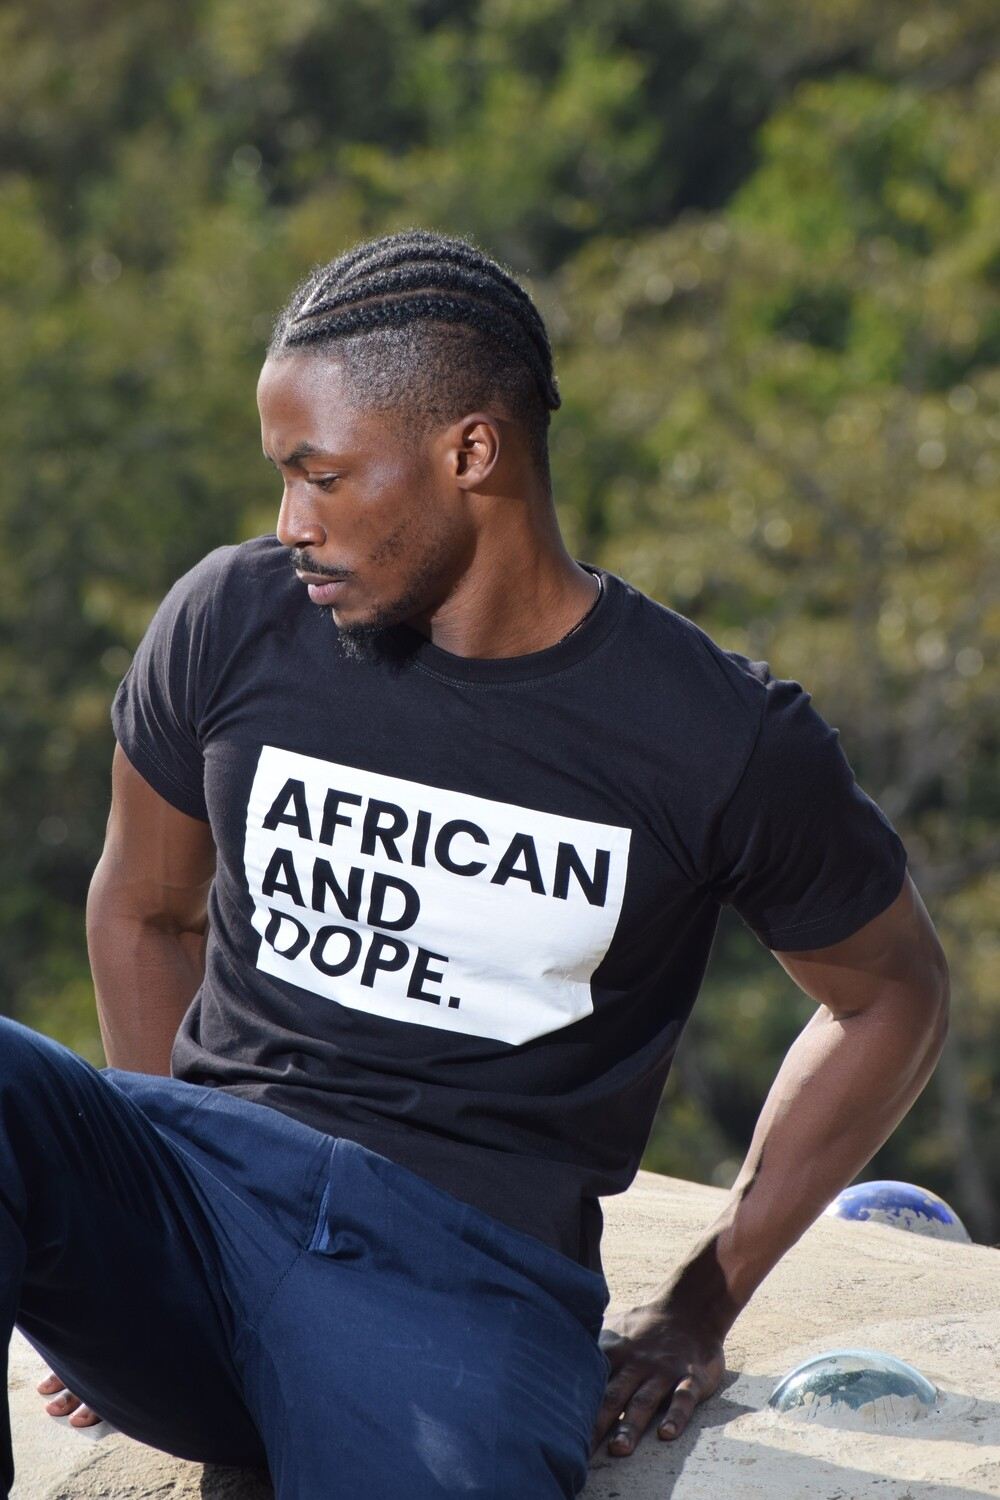 African and Dope